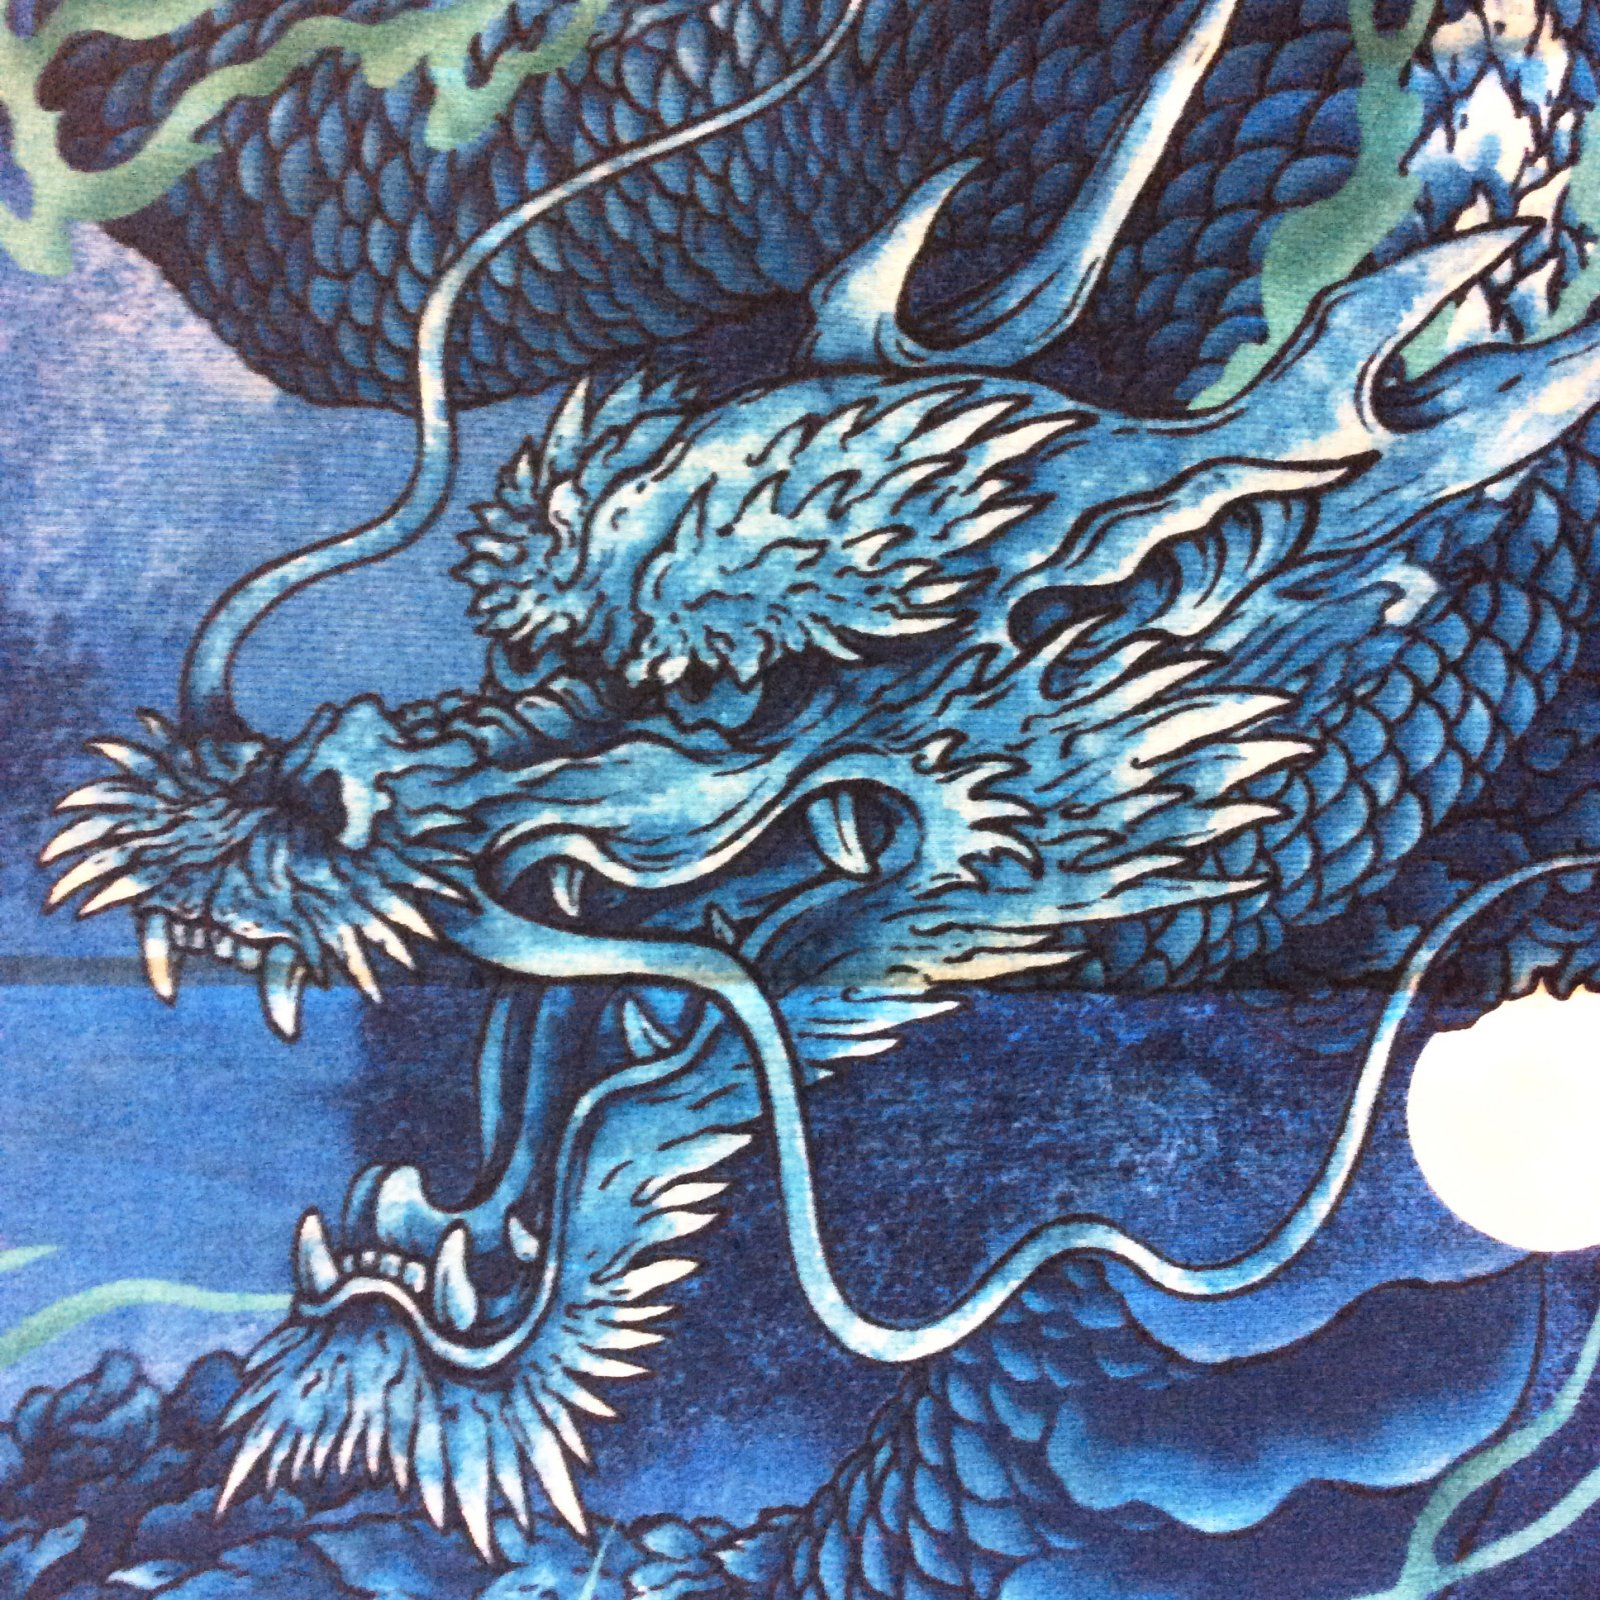 Kona bay pnl149 asian dragon moon crane japanese fantasy for Dragon fabric kids